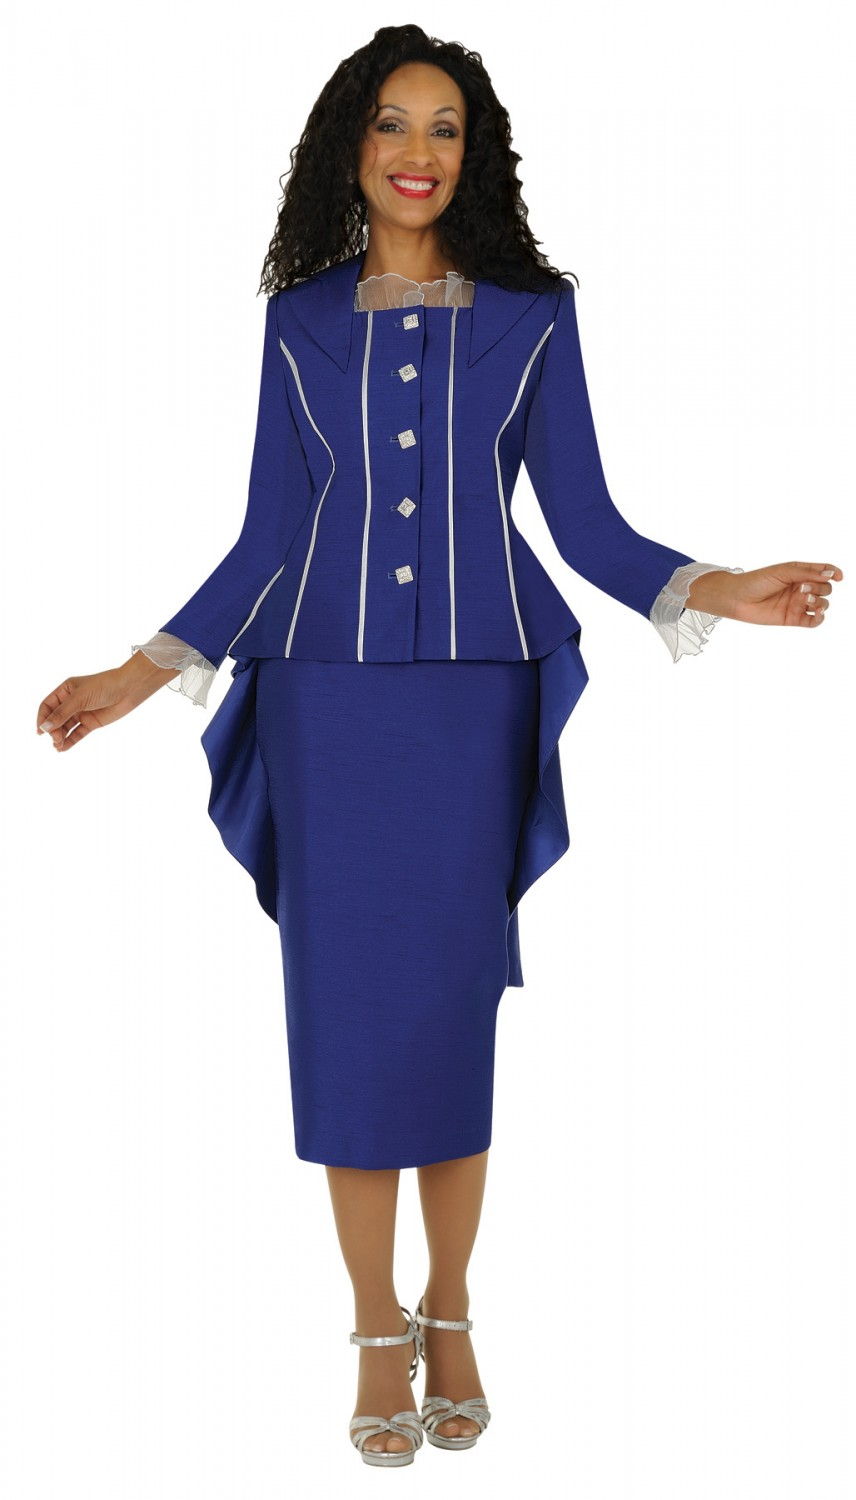 Women Church Suits NAVY BLUE / Silver G4592 | Texedo Jacket skirt ...